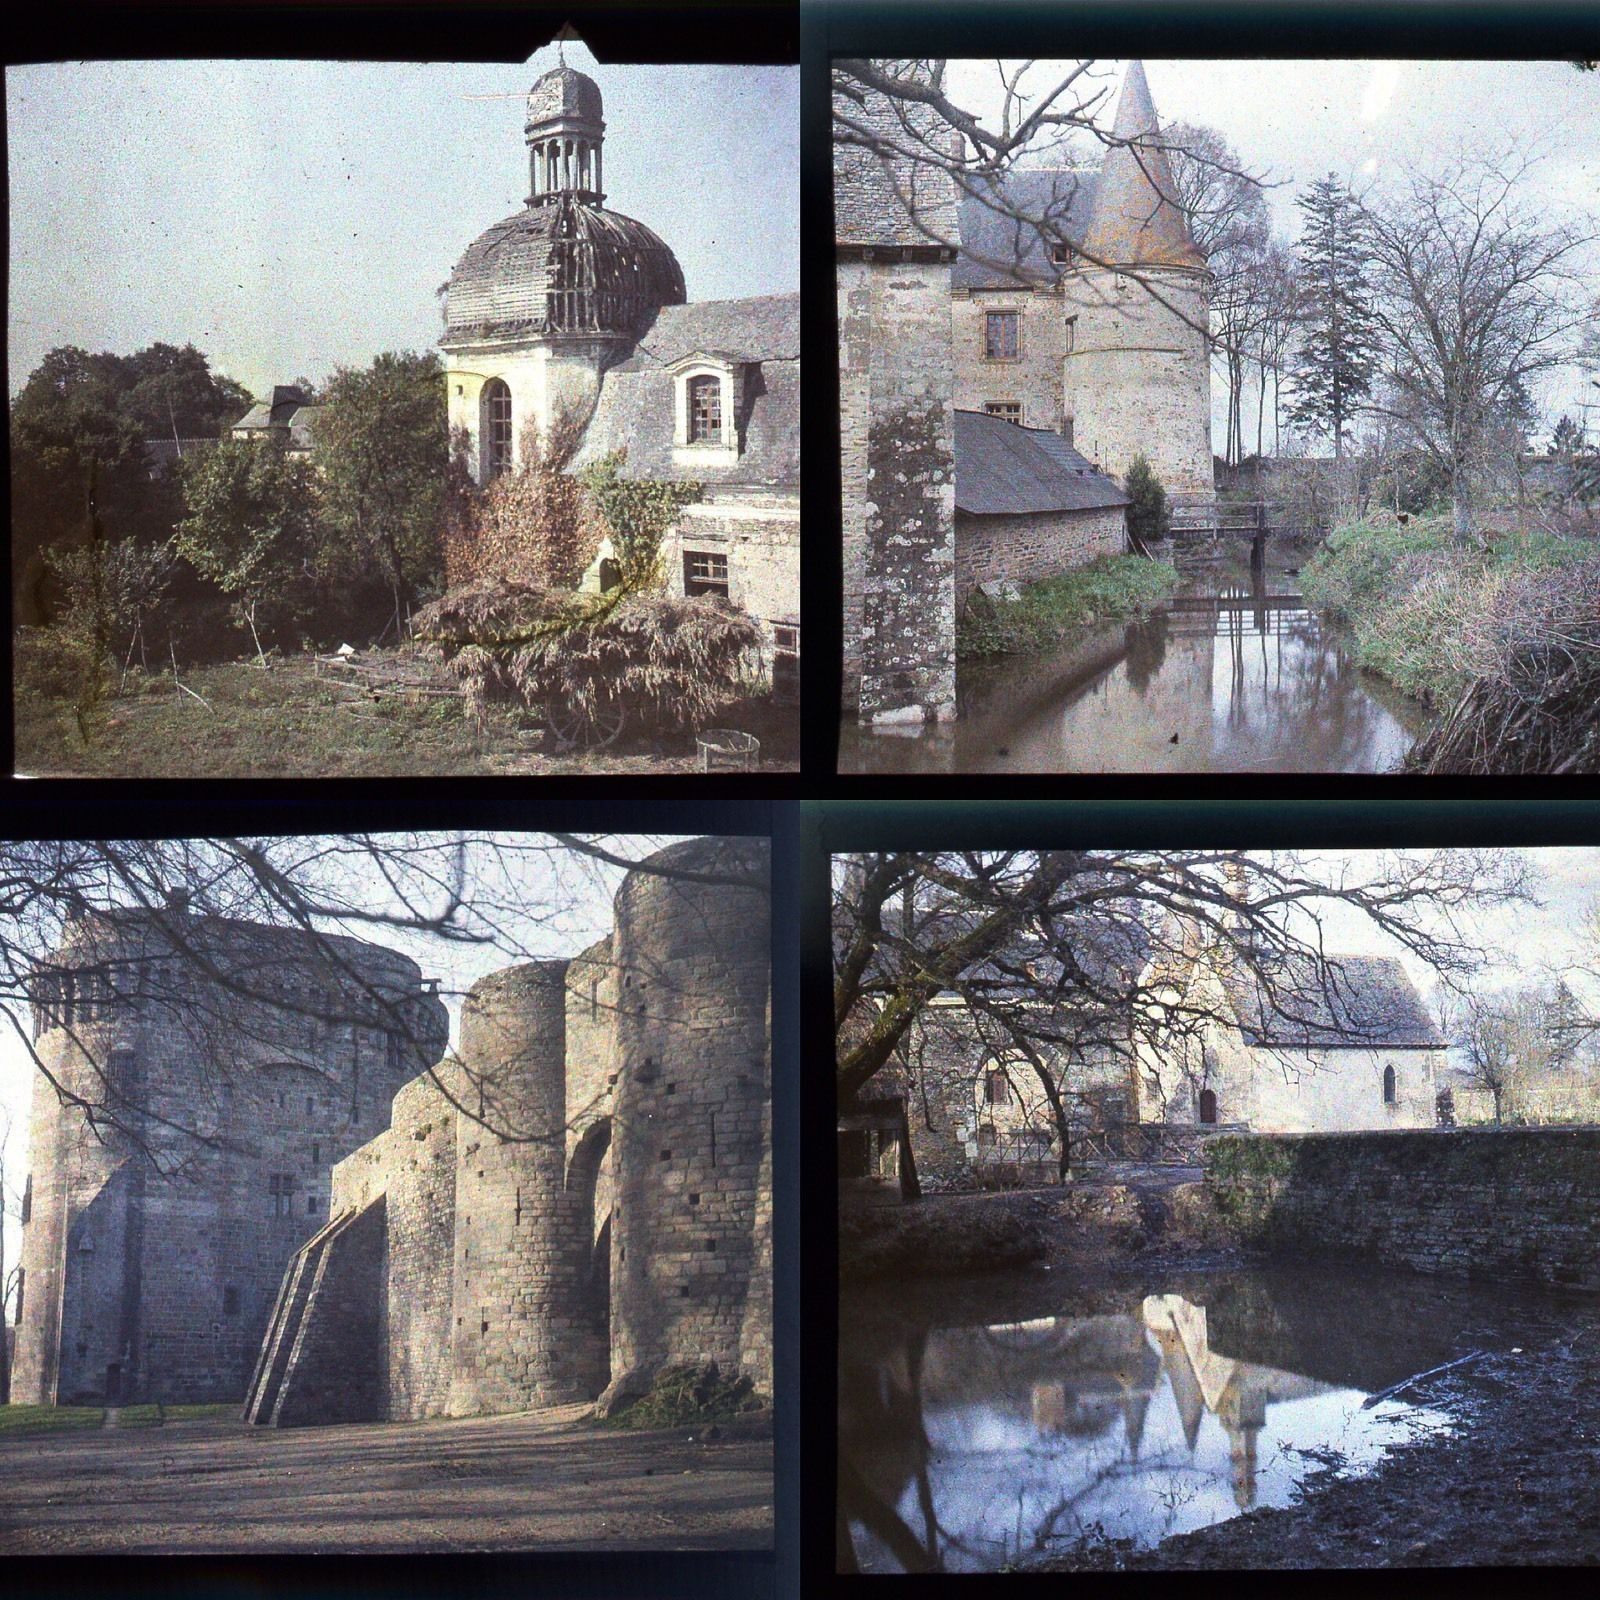 AUTOCHROMES FILMCOLOR LUMIERE 1935 12 PLAQUES PHOTOS STEREO 6x13 VUES DINAN ETC. | eBay